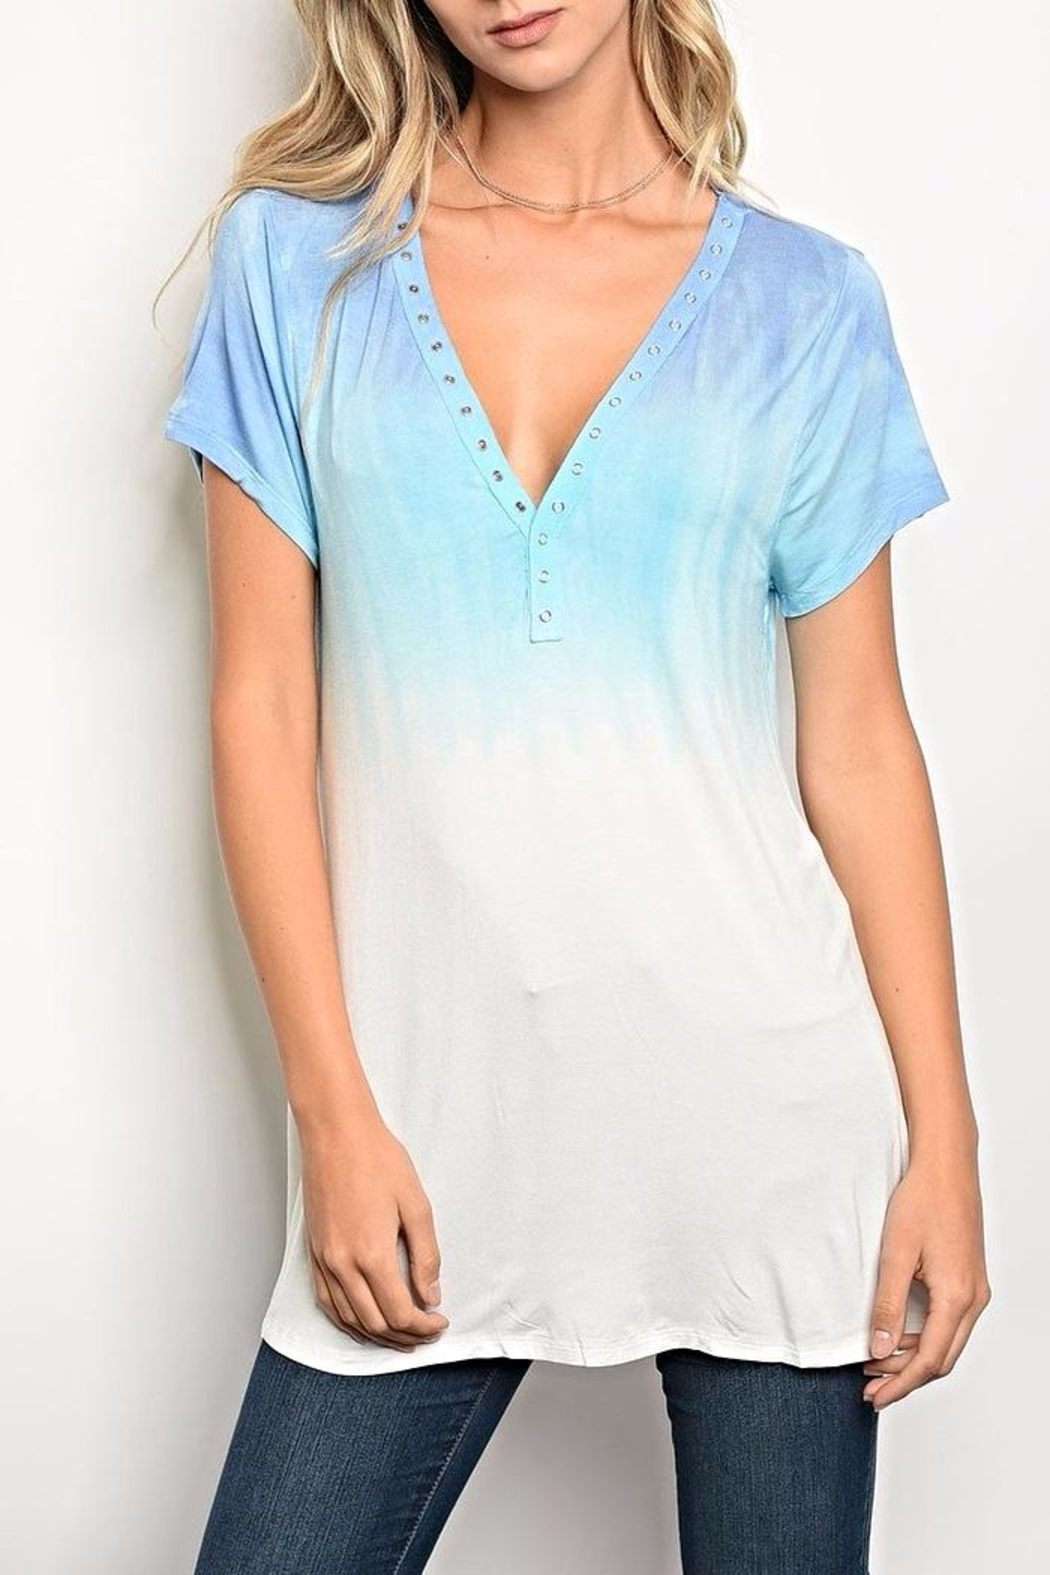 Kori Blue Ombre Tee - Front Cropped Image